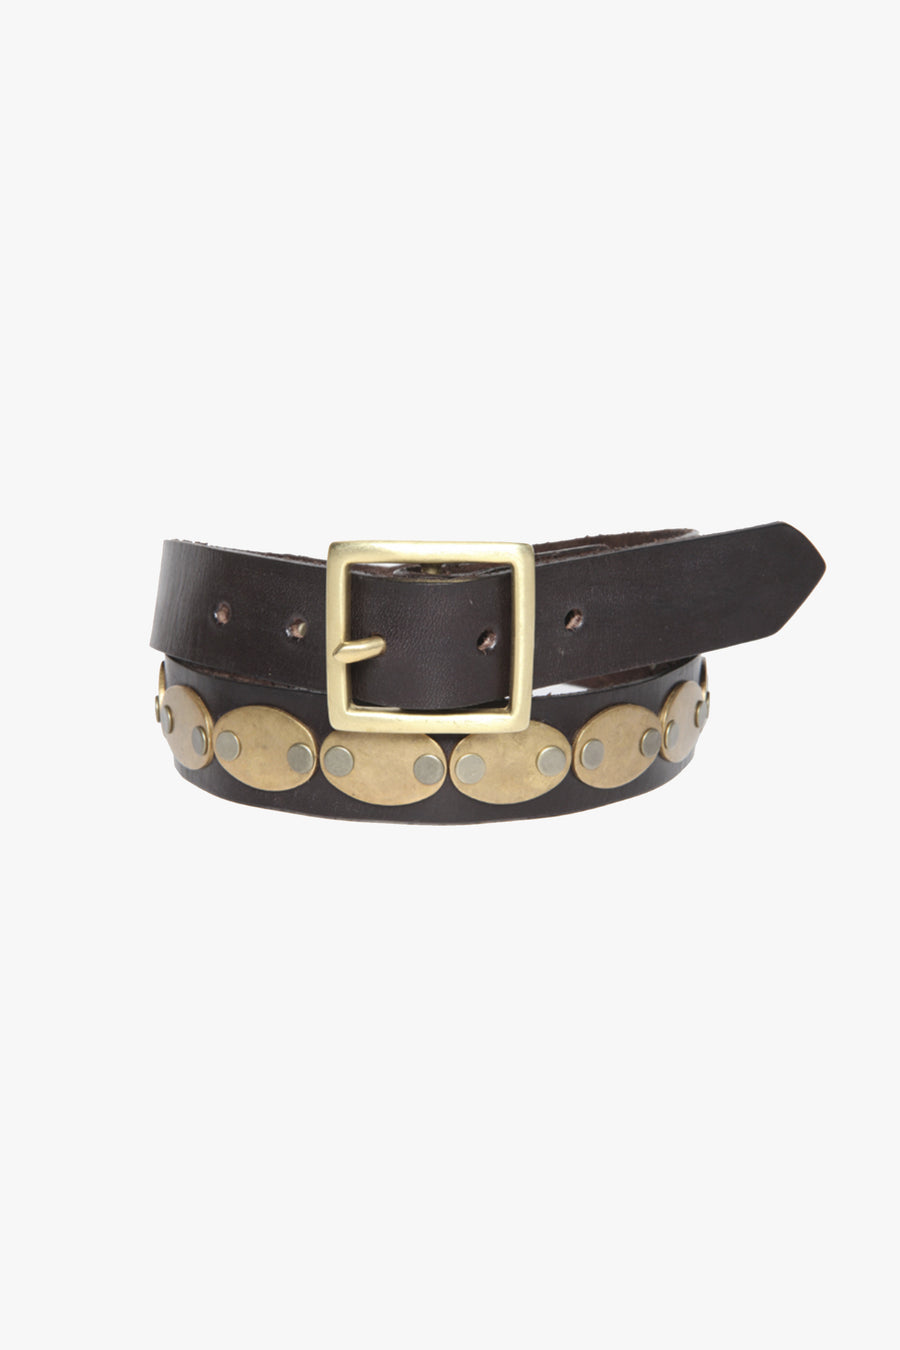 CONCHA BELT - Kelly Cole USA